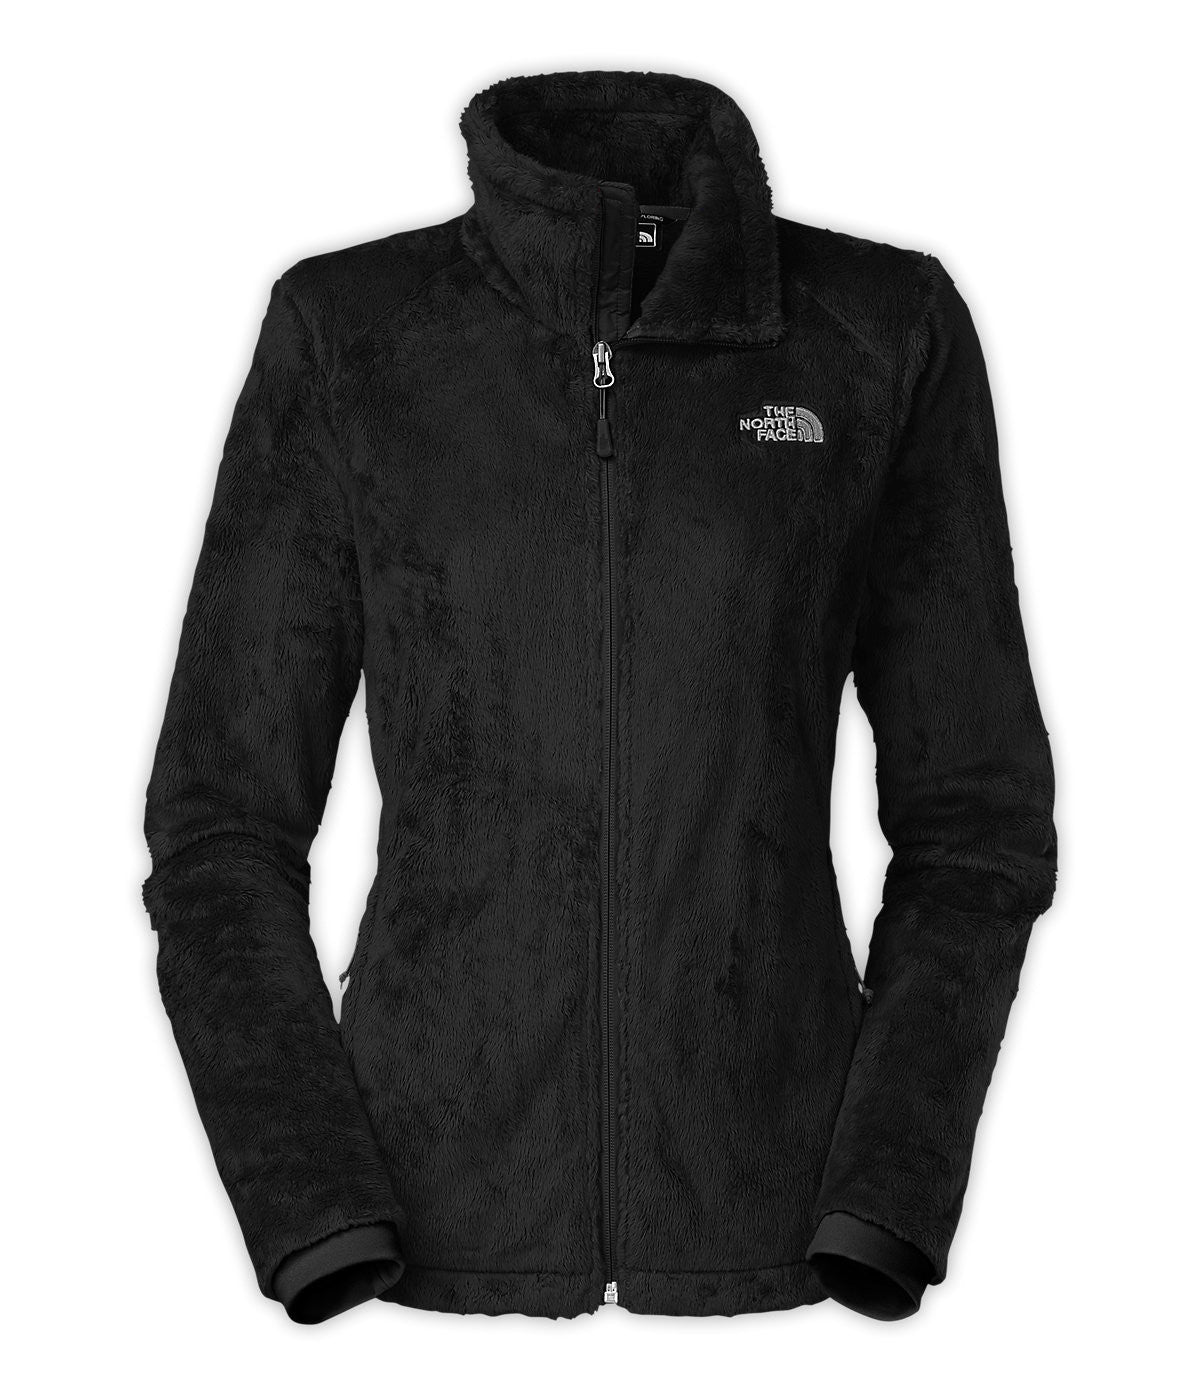 The North Face Womens Osito 2 Jacket TNF Black - Andy Thornal Company 75d6f322e8